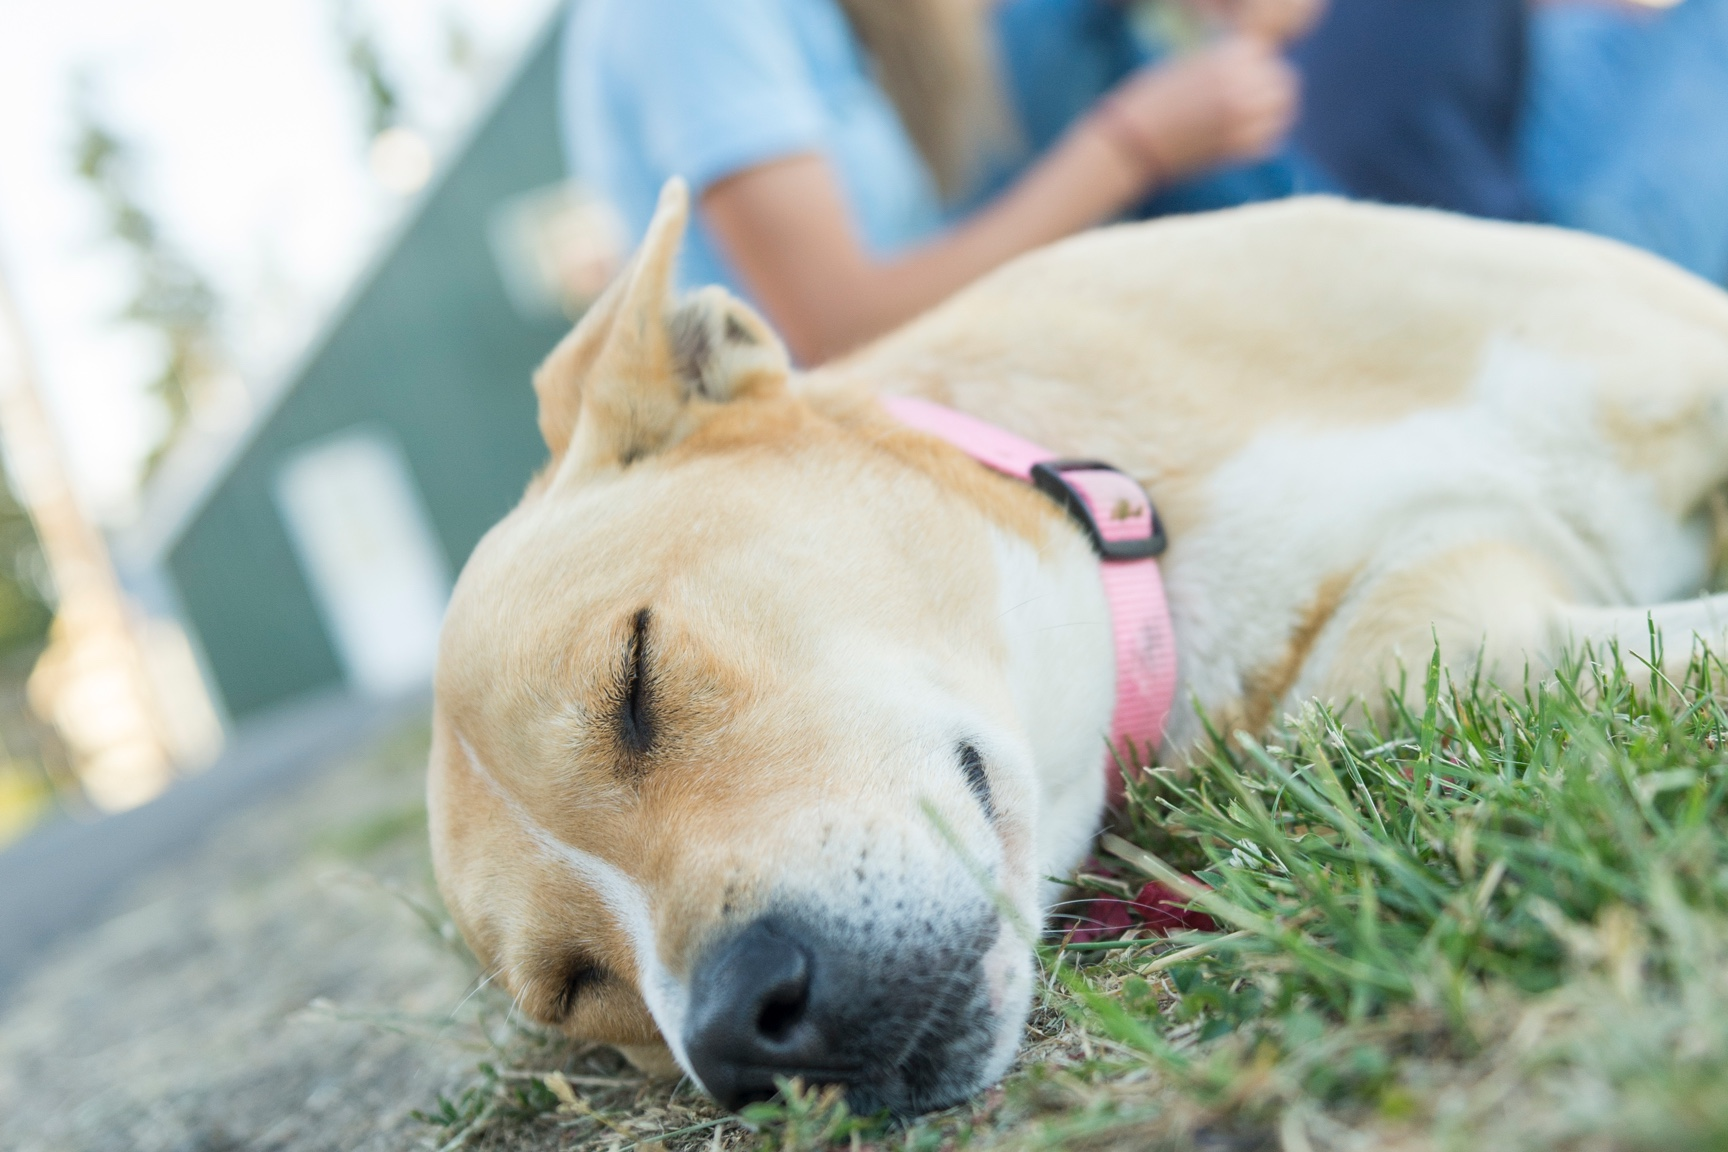 A yellow lab with a pink collar naps in the grass.